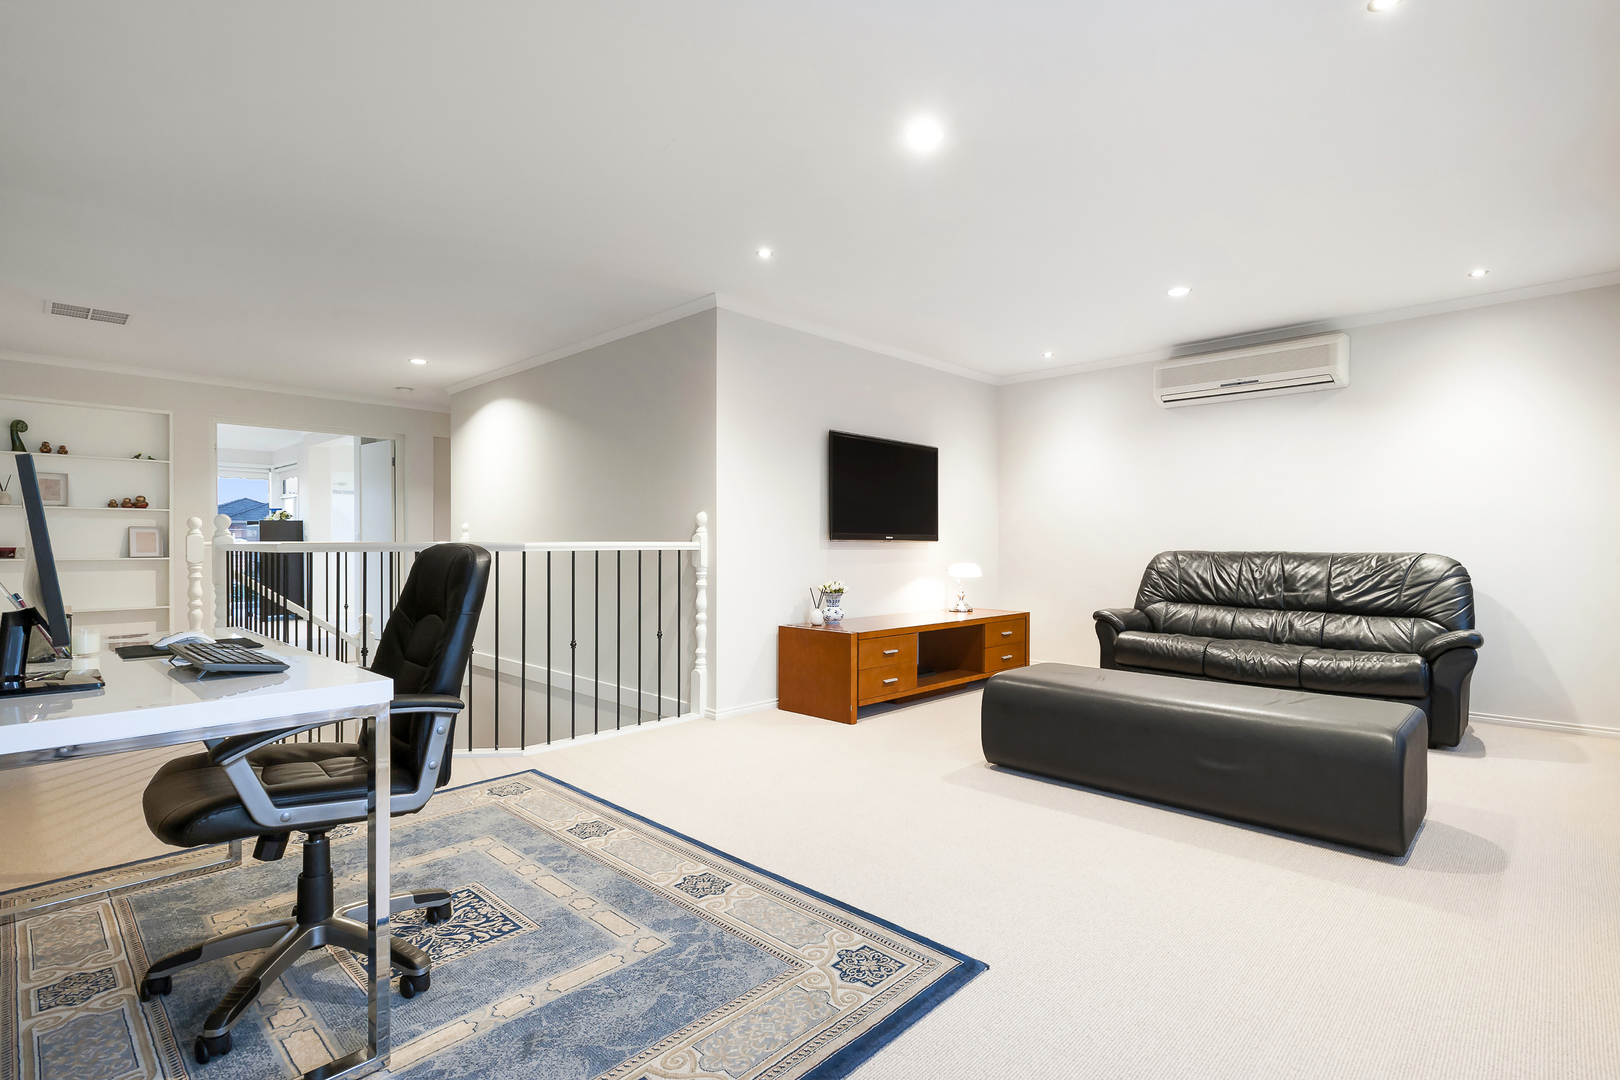 Living Room Furniture Kitchener kitchener road pascoe vale